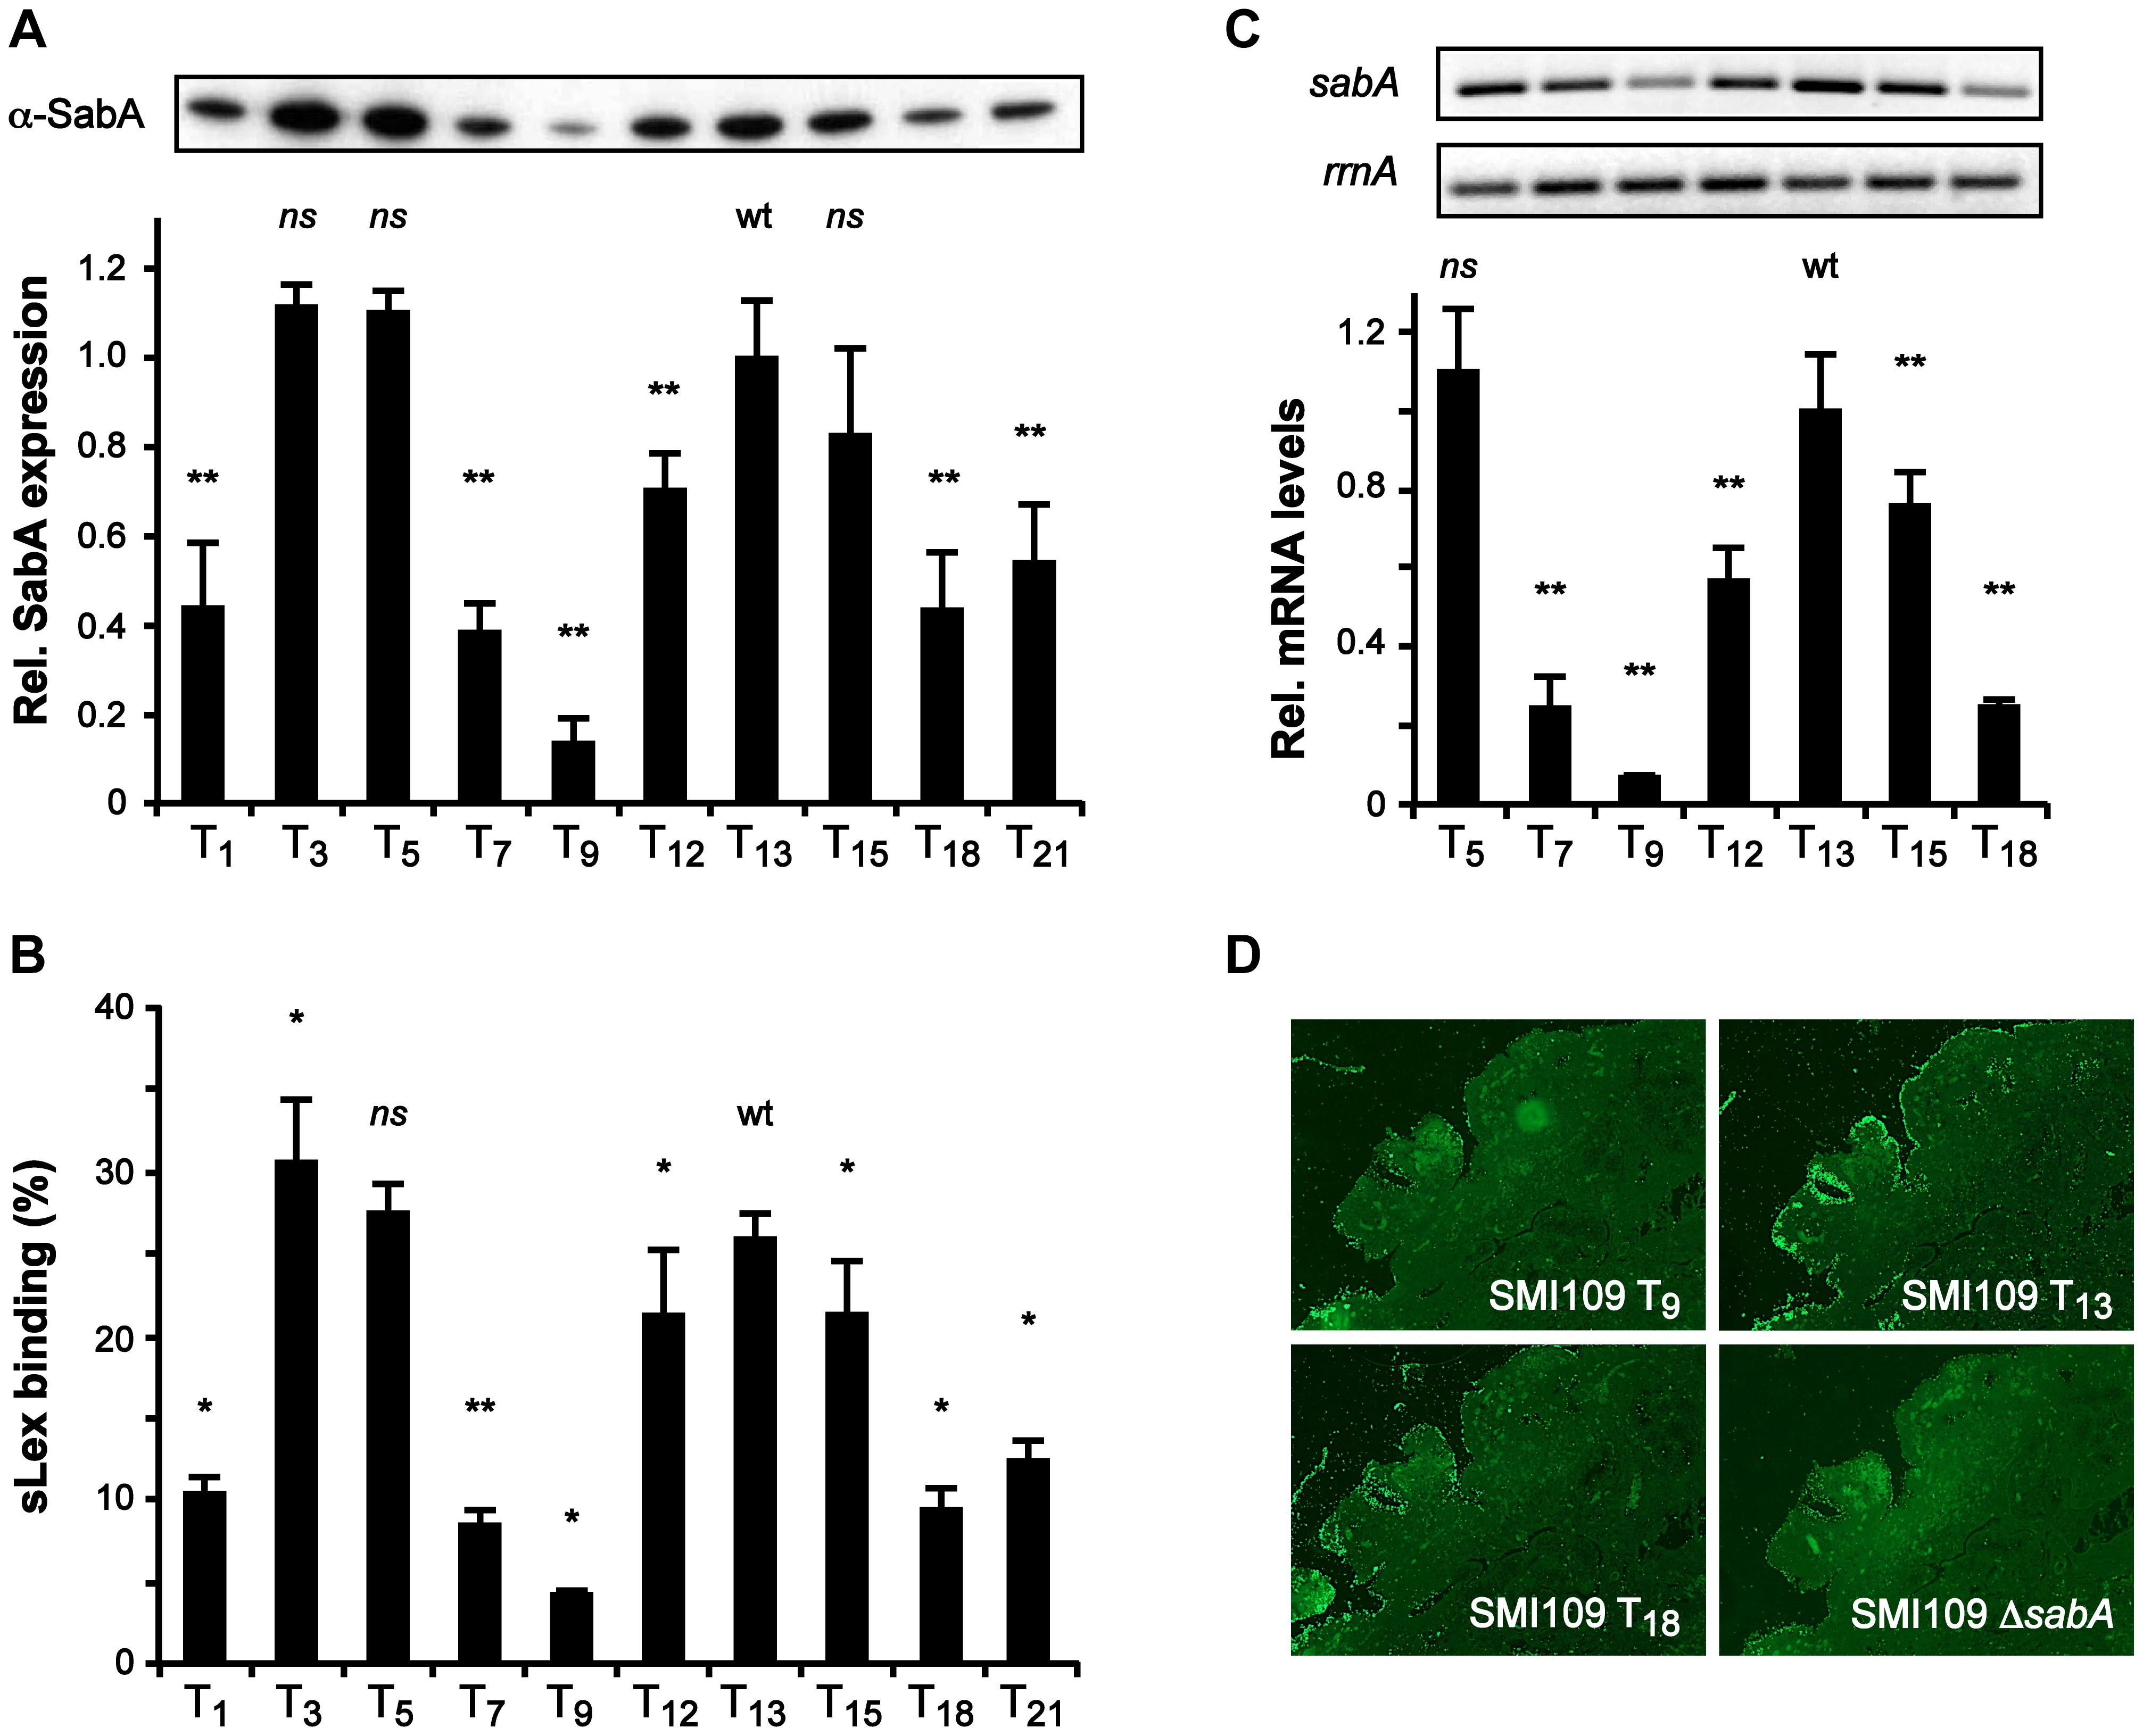 The T-tract length alters sLex-receptor binding activity by affecting <i>sabA</i> mRNA levels in <i>H. pylori</i>.